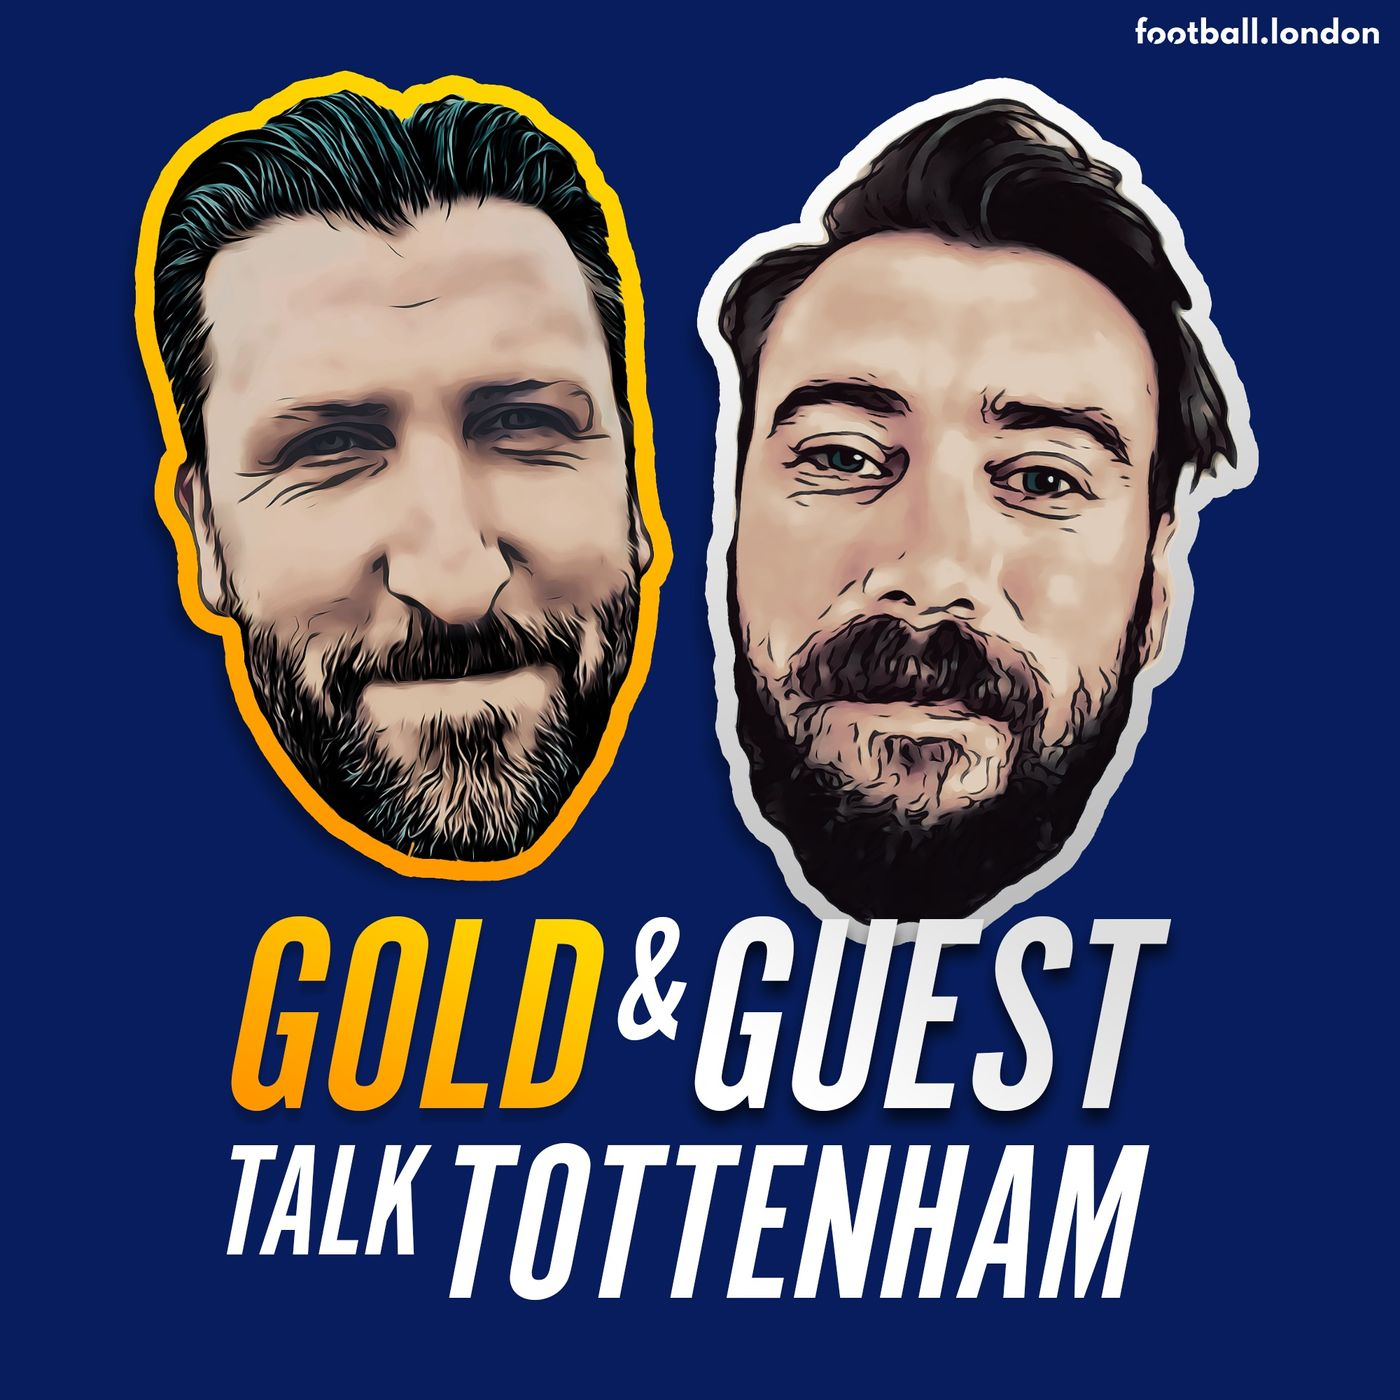 North London Derby preview as Ali gets told off by Nuno